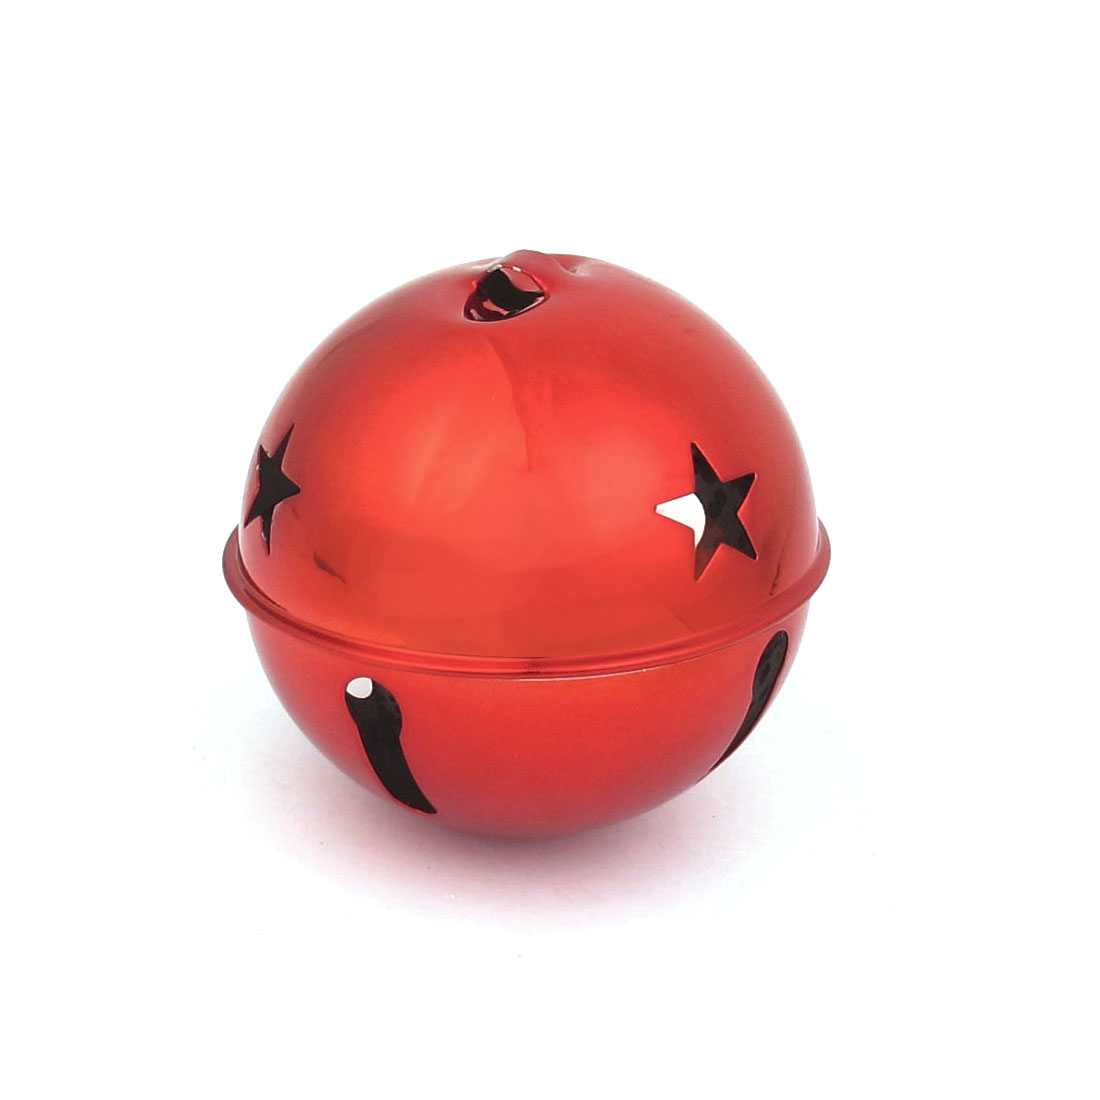 80mm Diameter Red Metal Star Detail Ball Shape Hollow Out Design Jingle Ring Bell Ornament for Christmas Tree Party